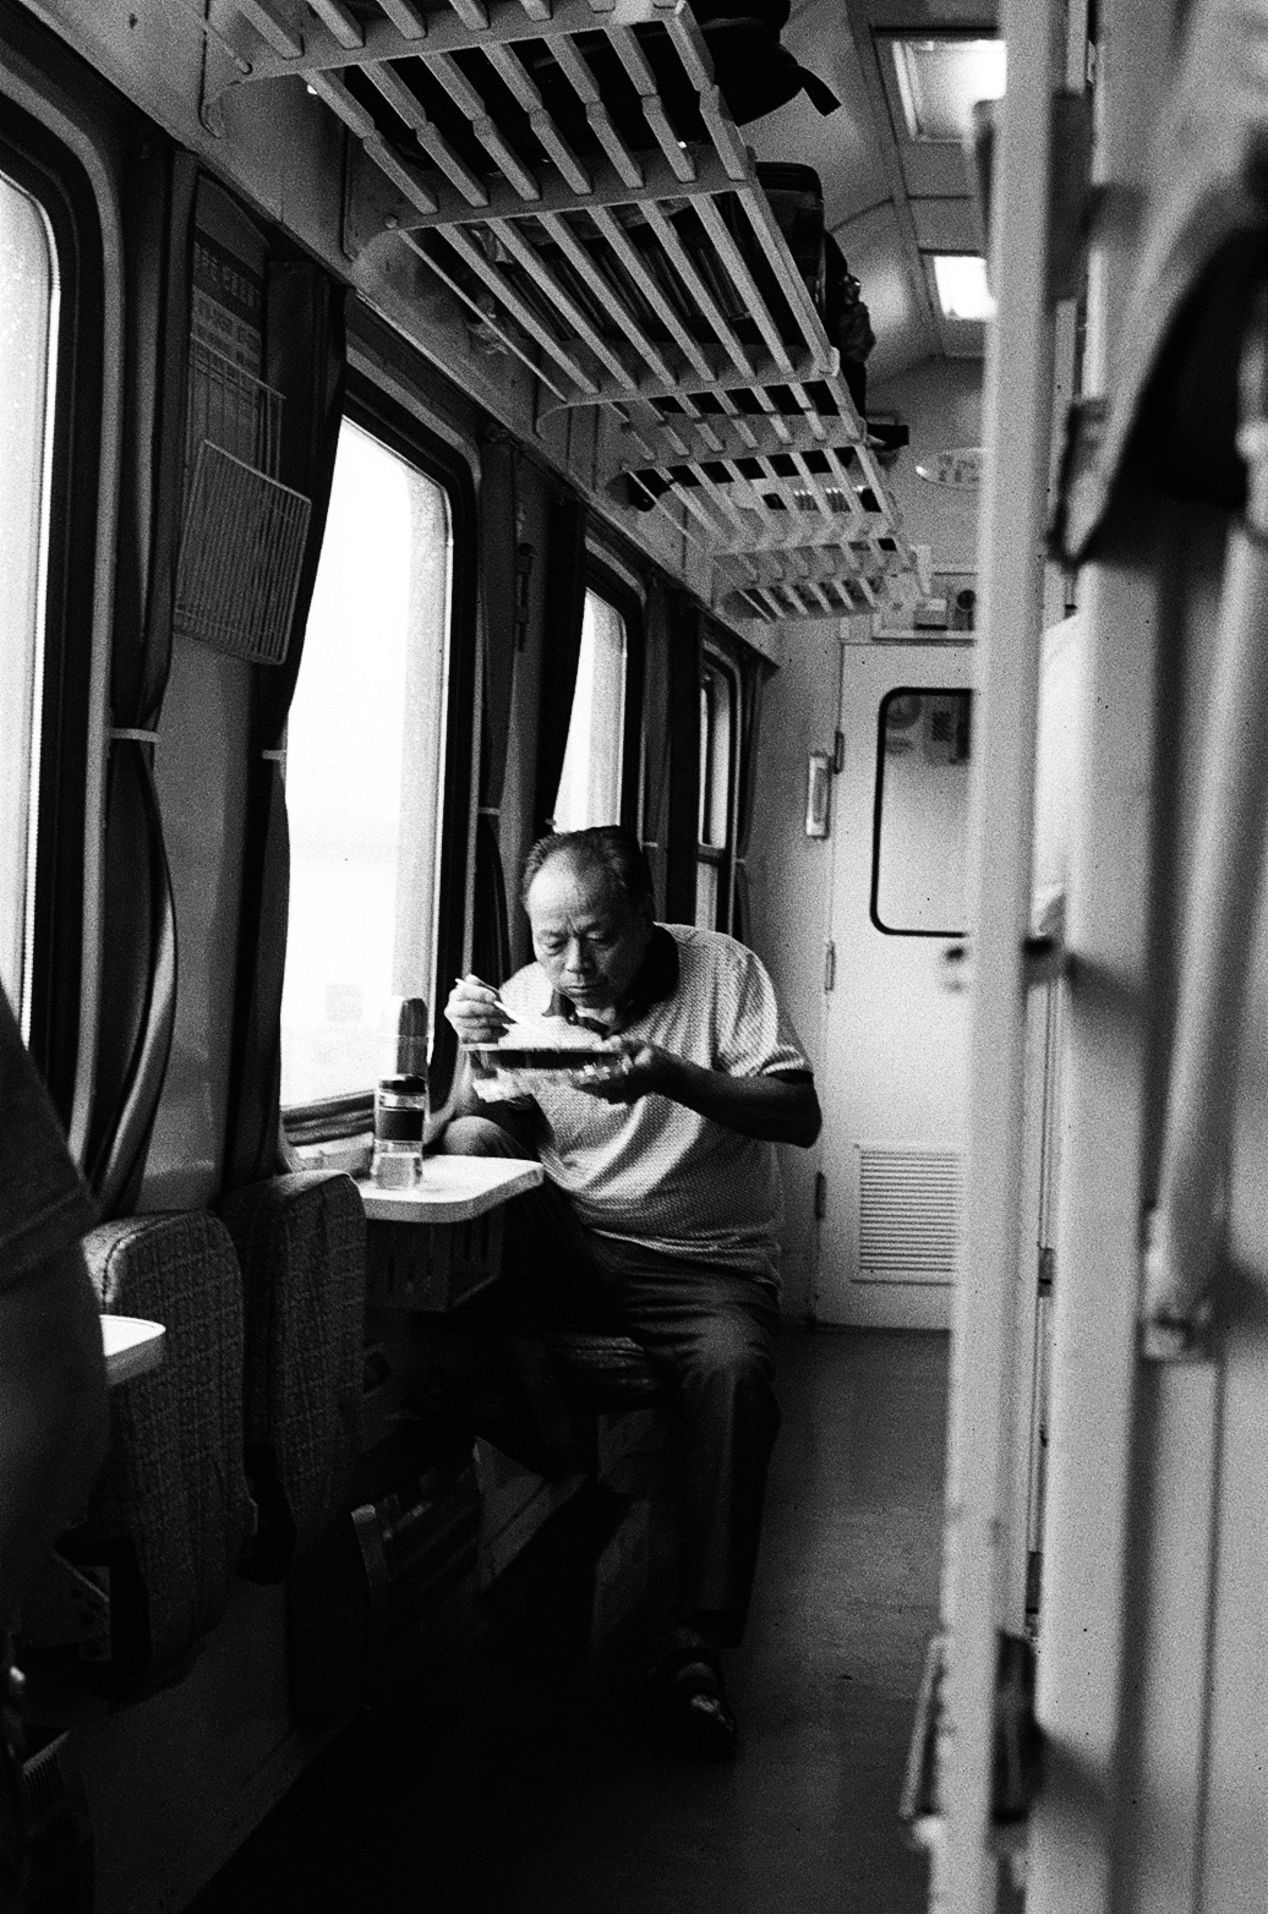 A scene from an eighteen-hour sleeper train ride in China.